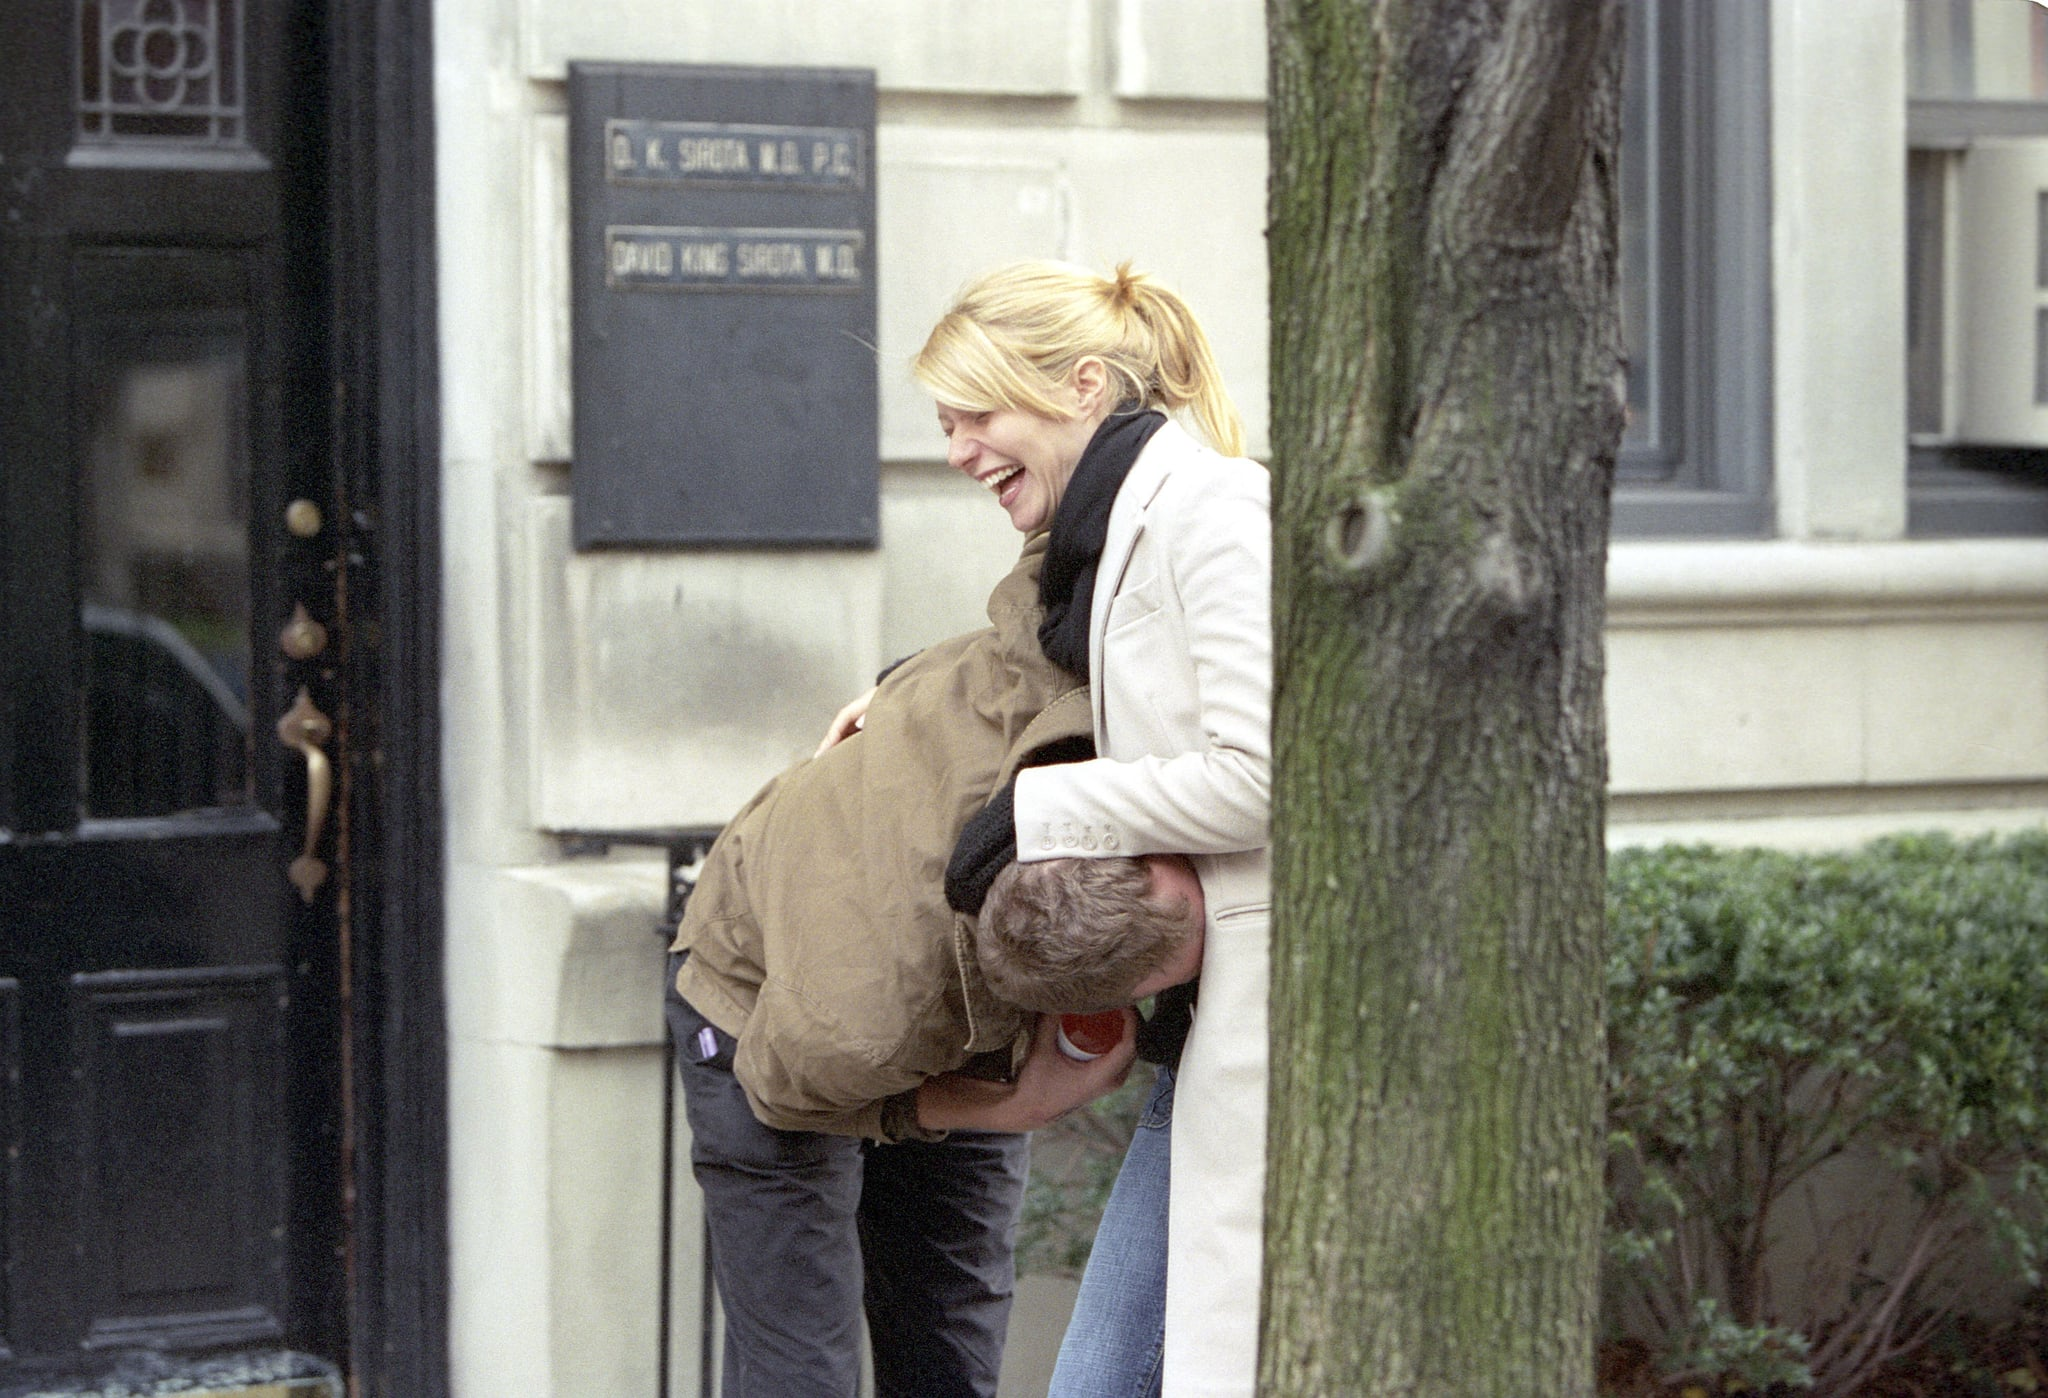 When Chris got playful with Gwyneth's baby bump in 2003.